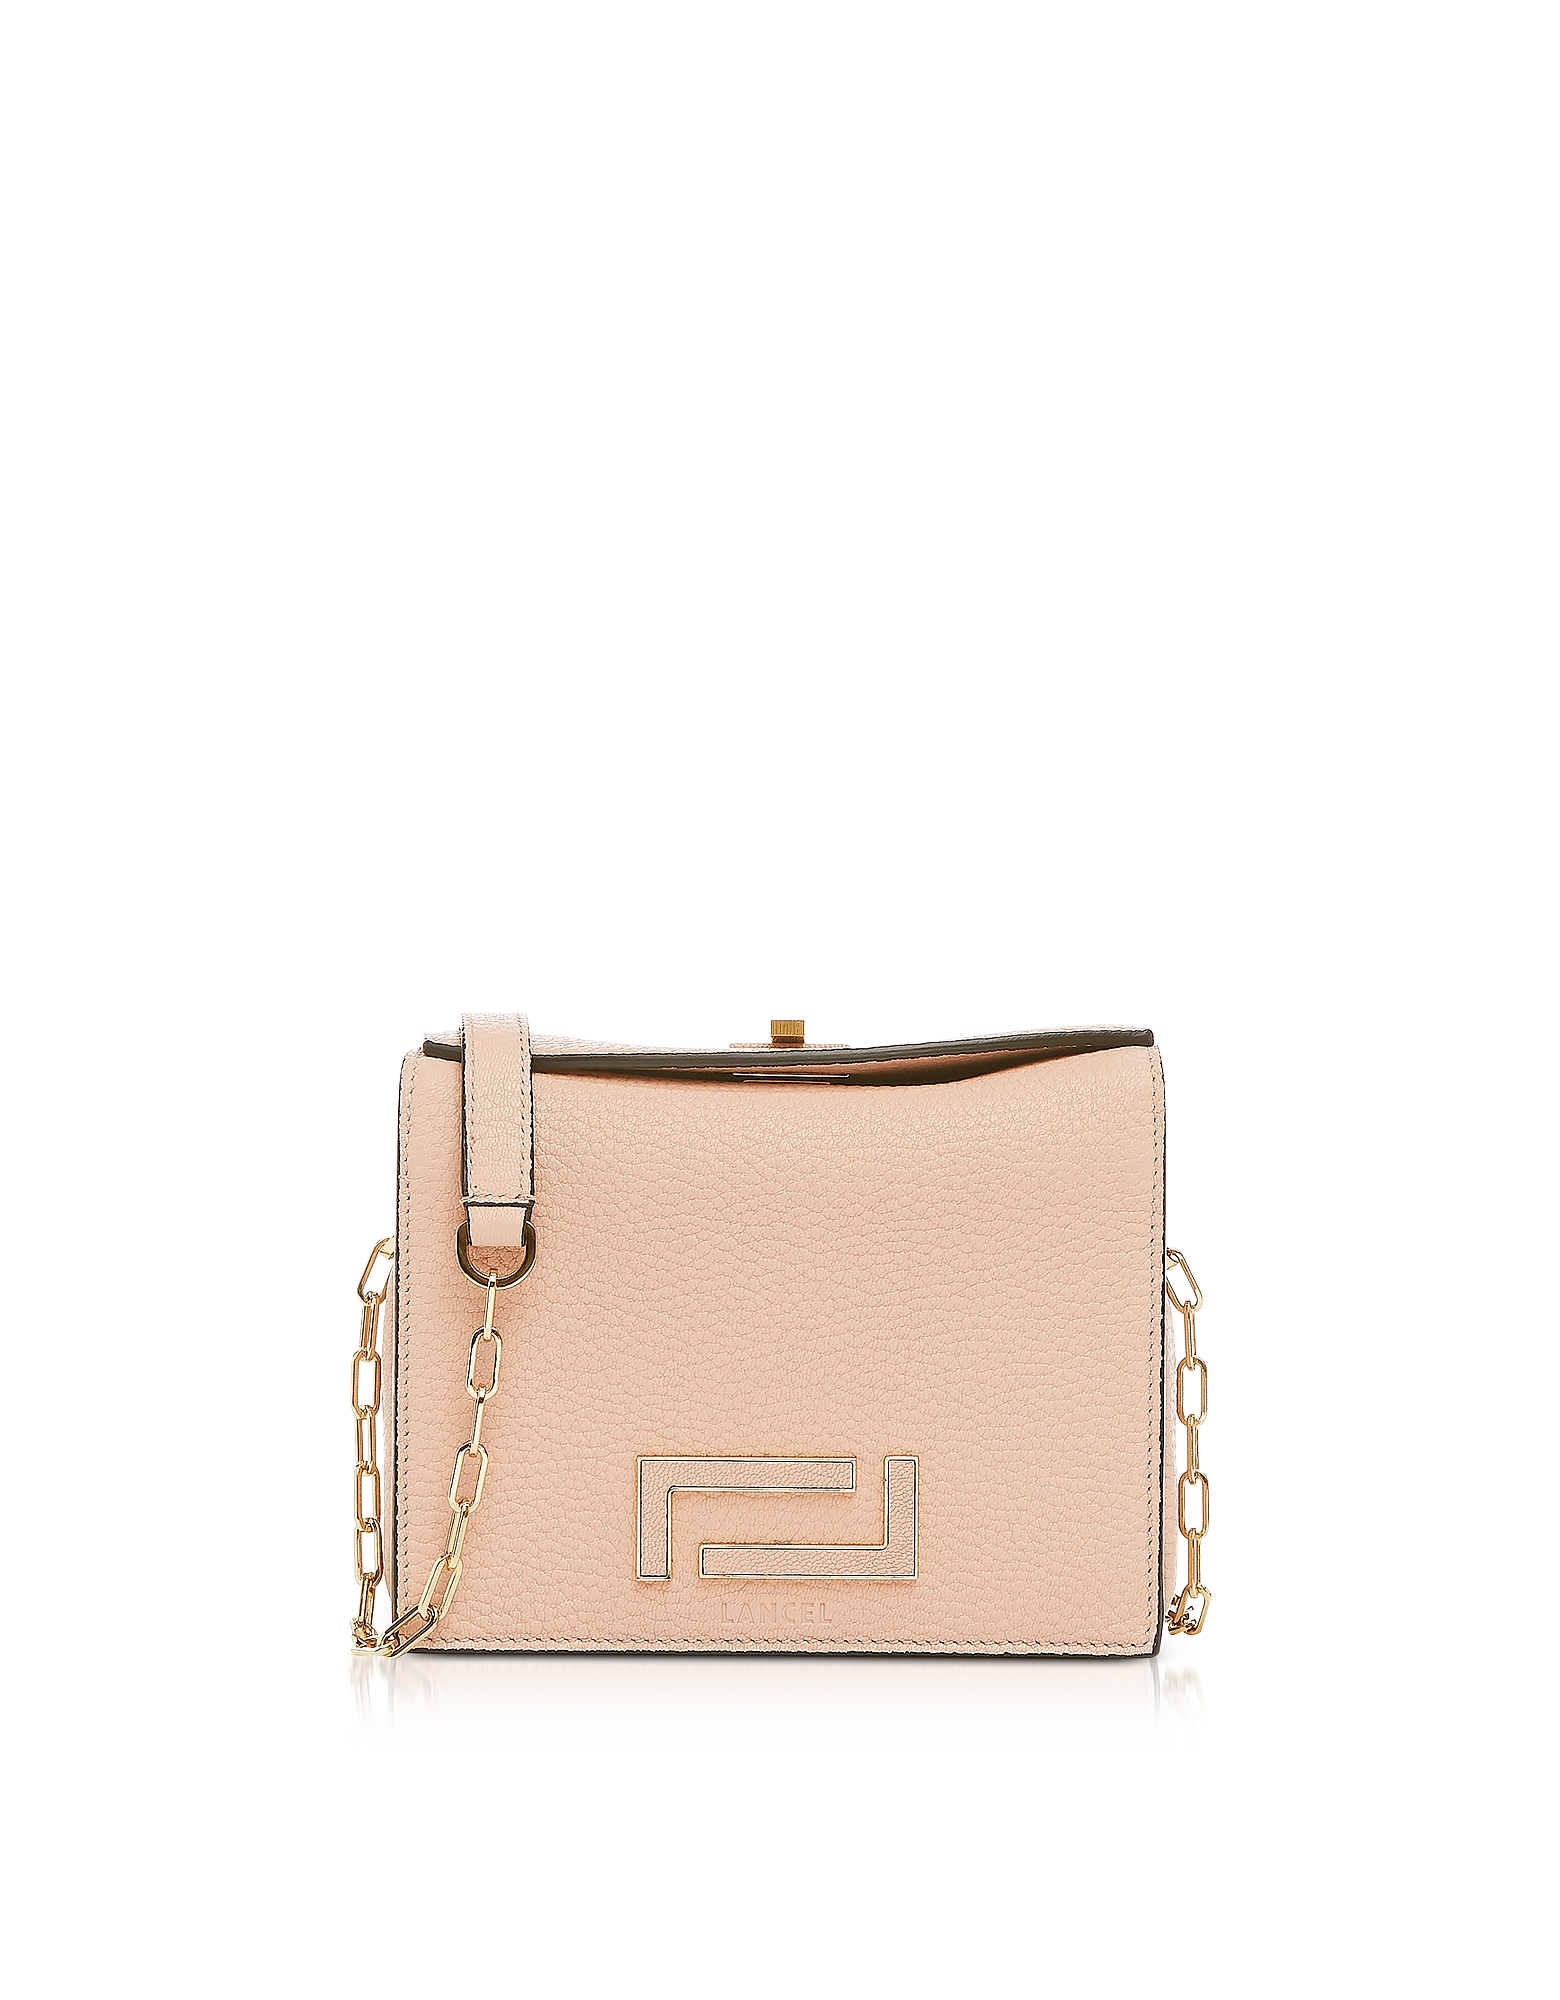 Lancel Designer Handbags, Pia Mini Chain Shoulder Bag